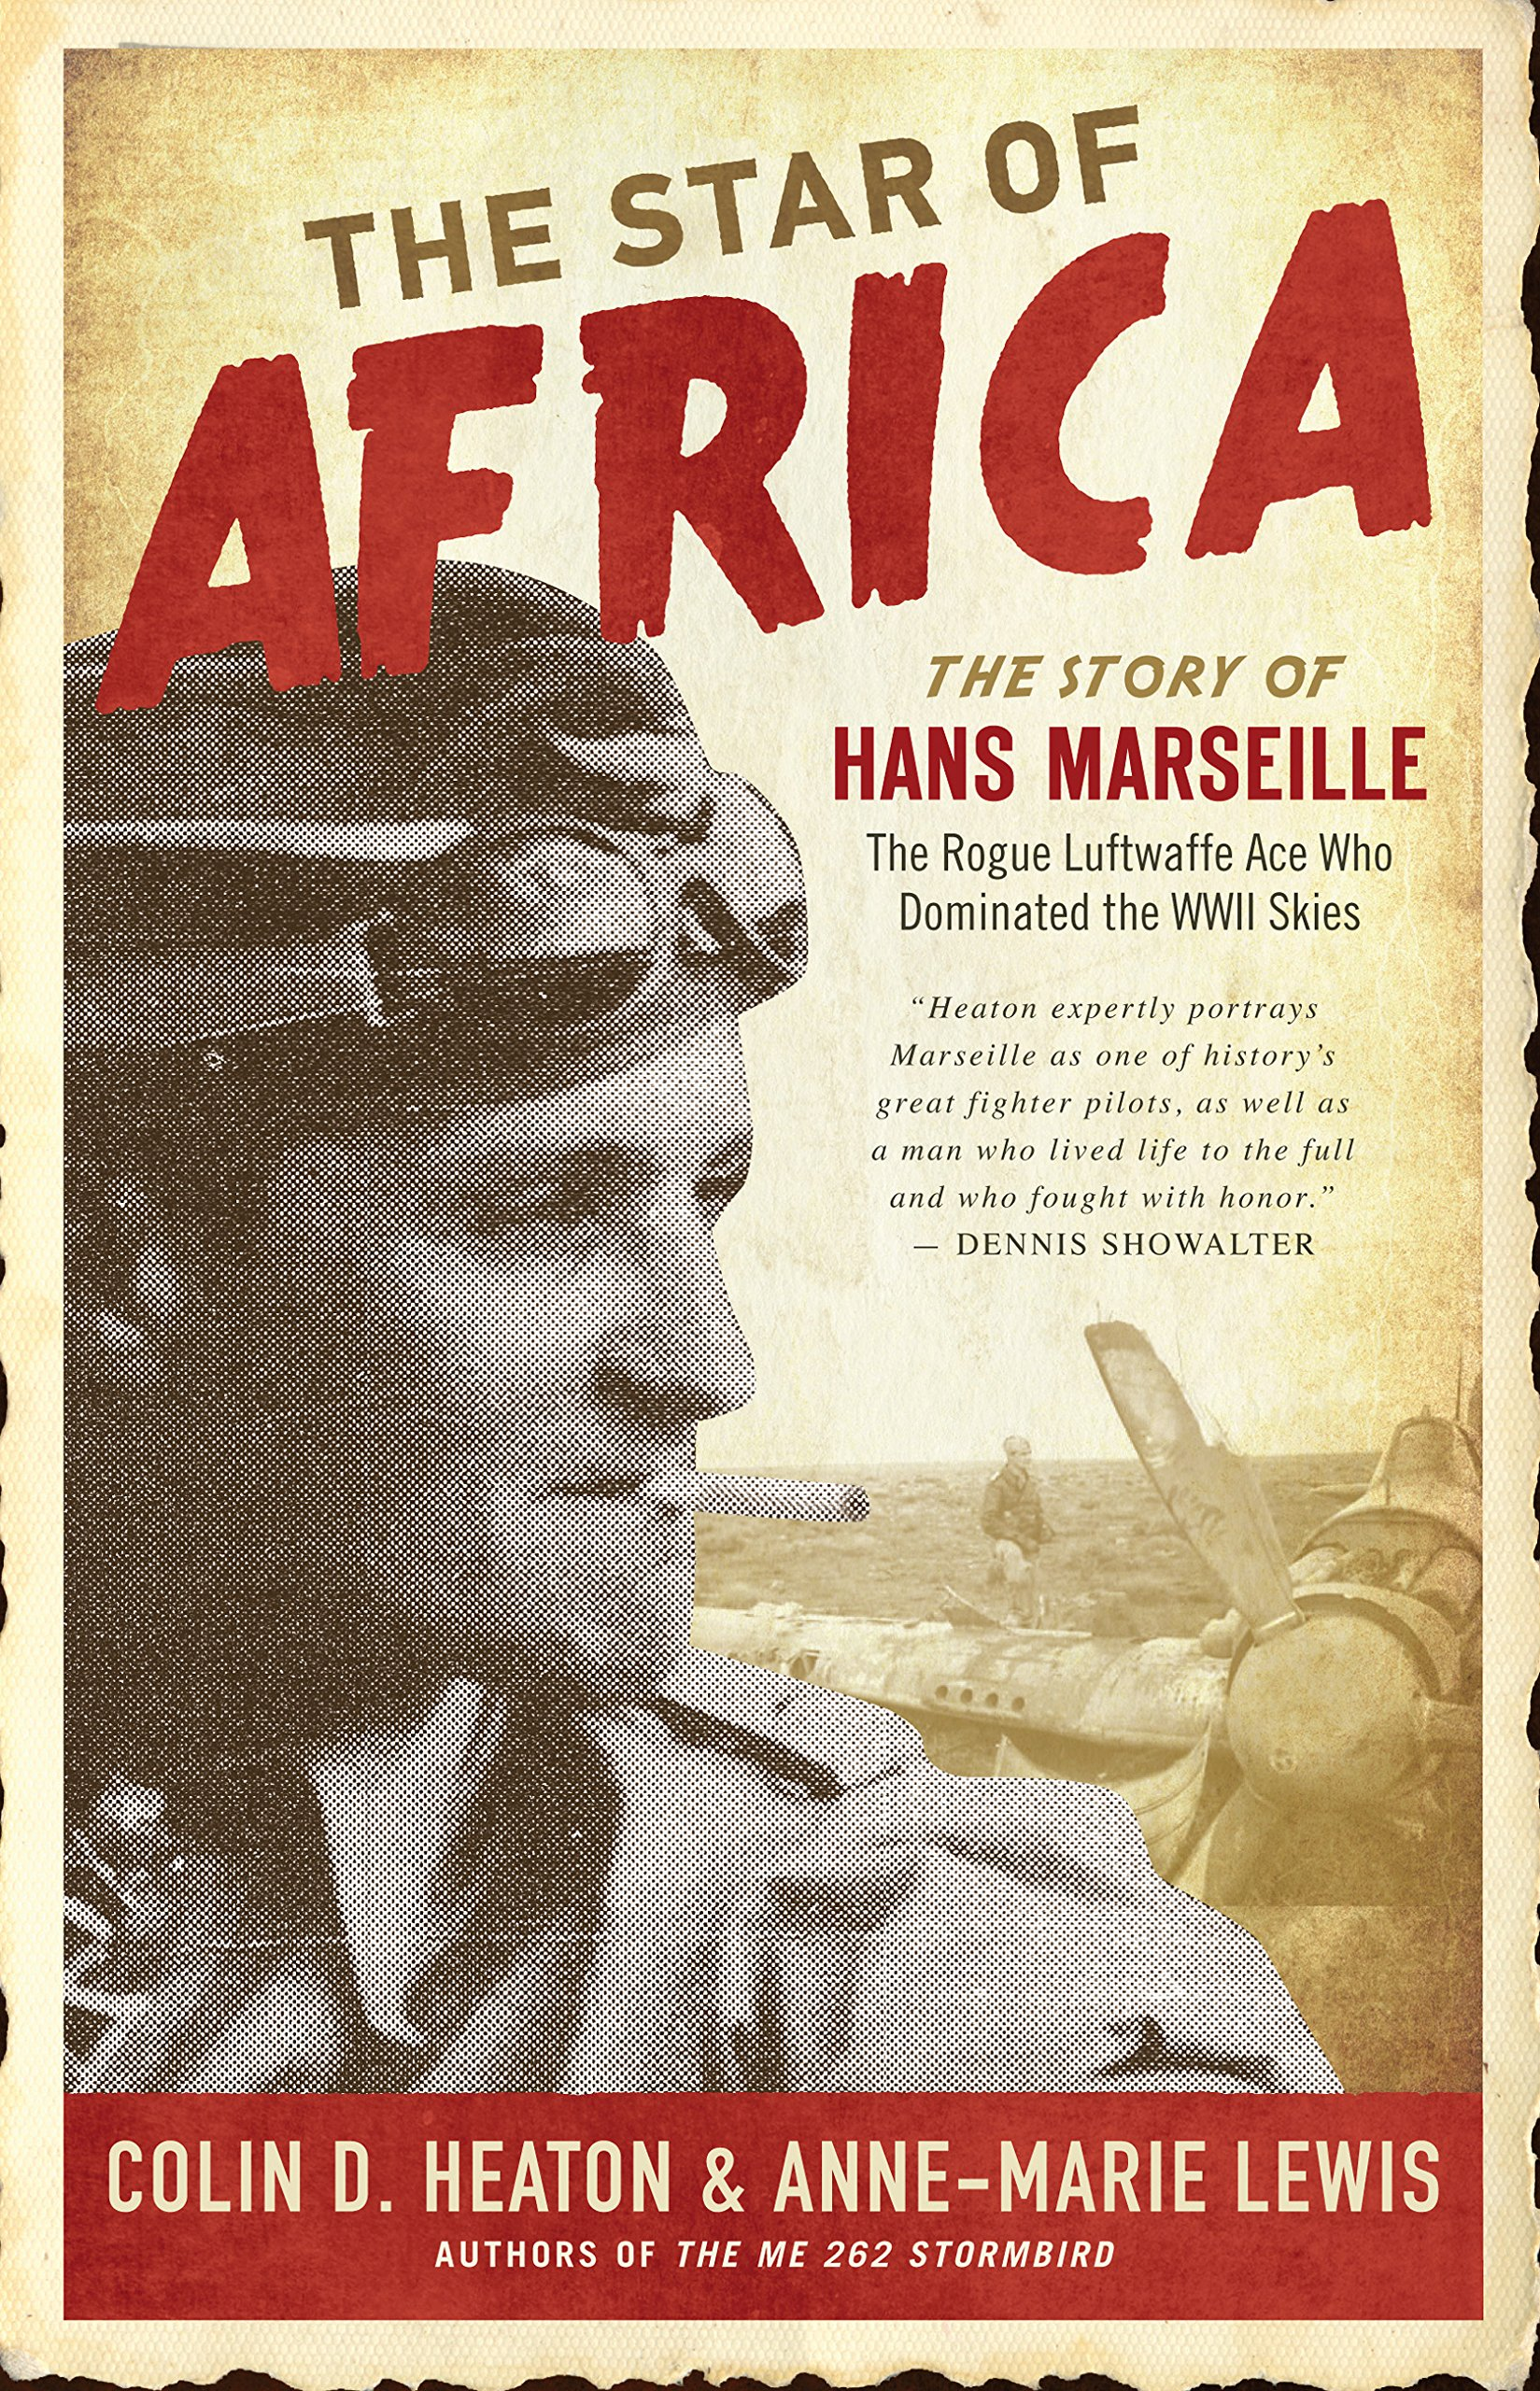 German Fighter Ace Hans-Joachim Marseille: The Life Story of the Star of Africa